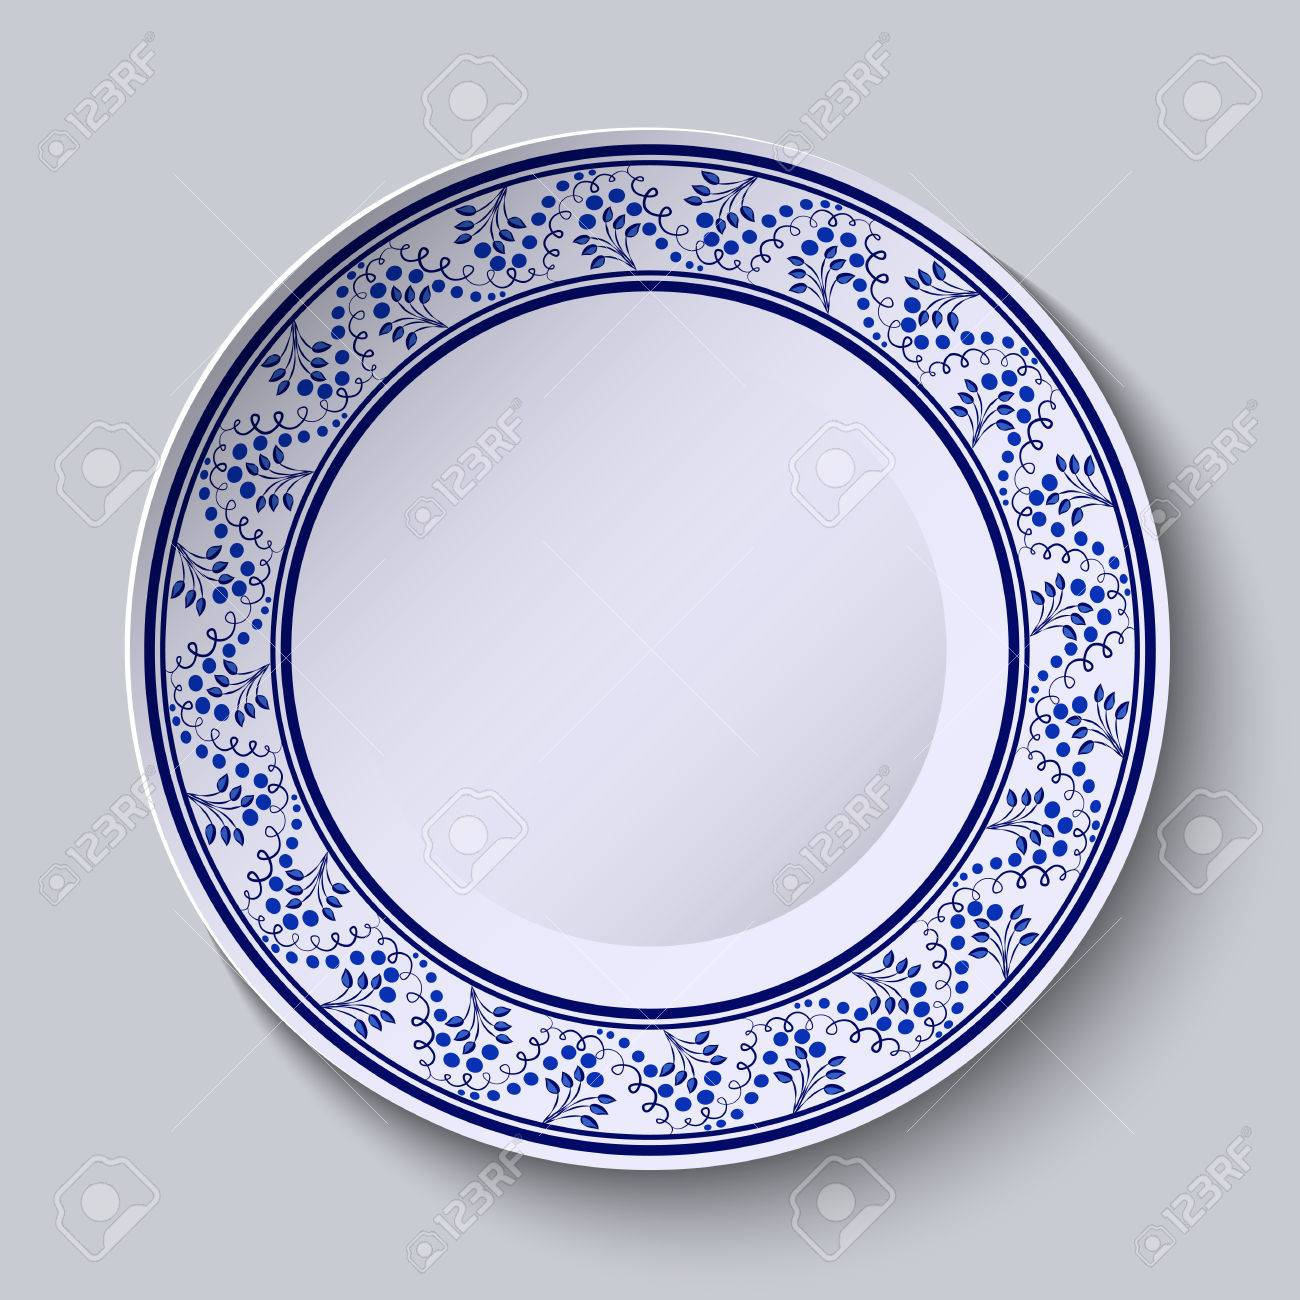 Plate With Blue Decorative Border. Template Design In Ethnic ...